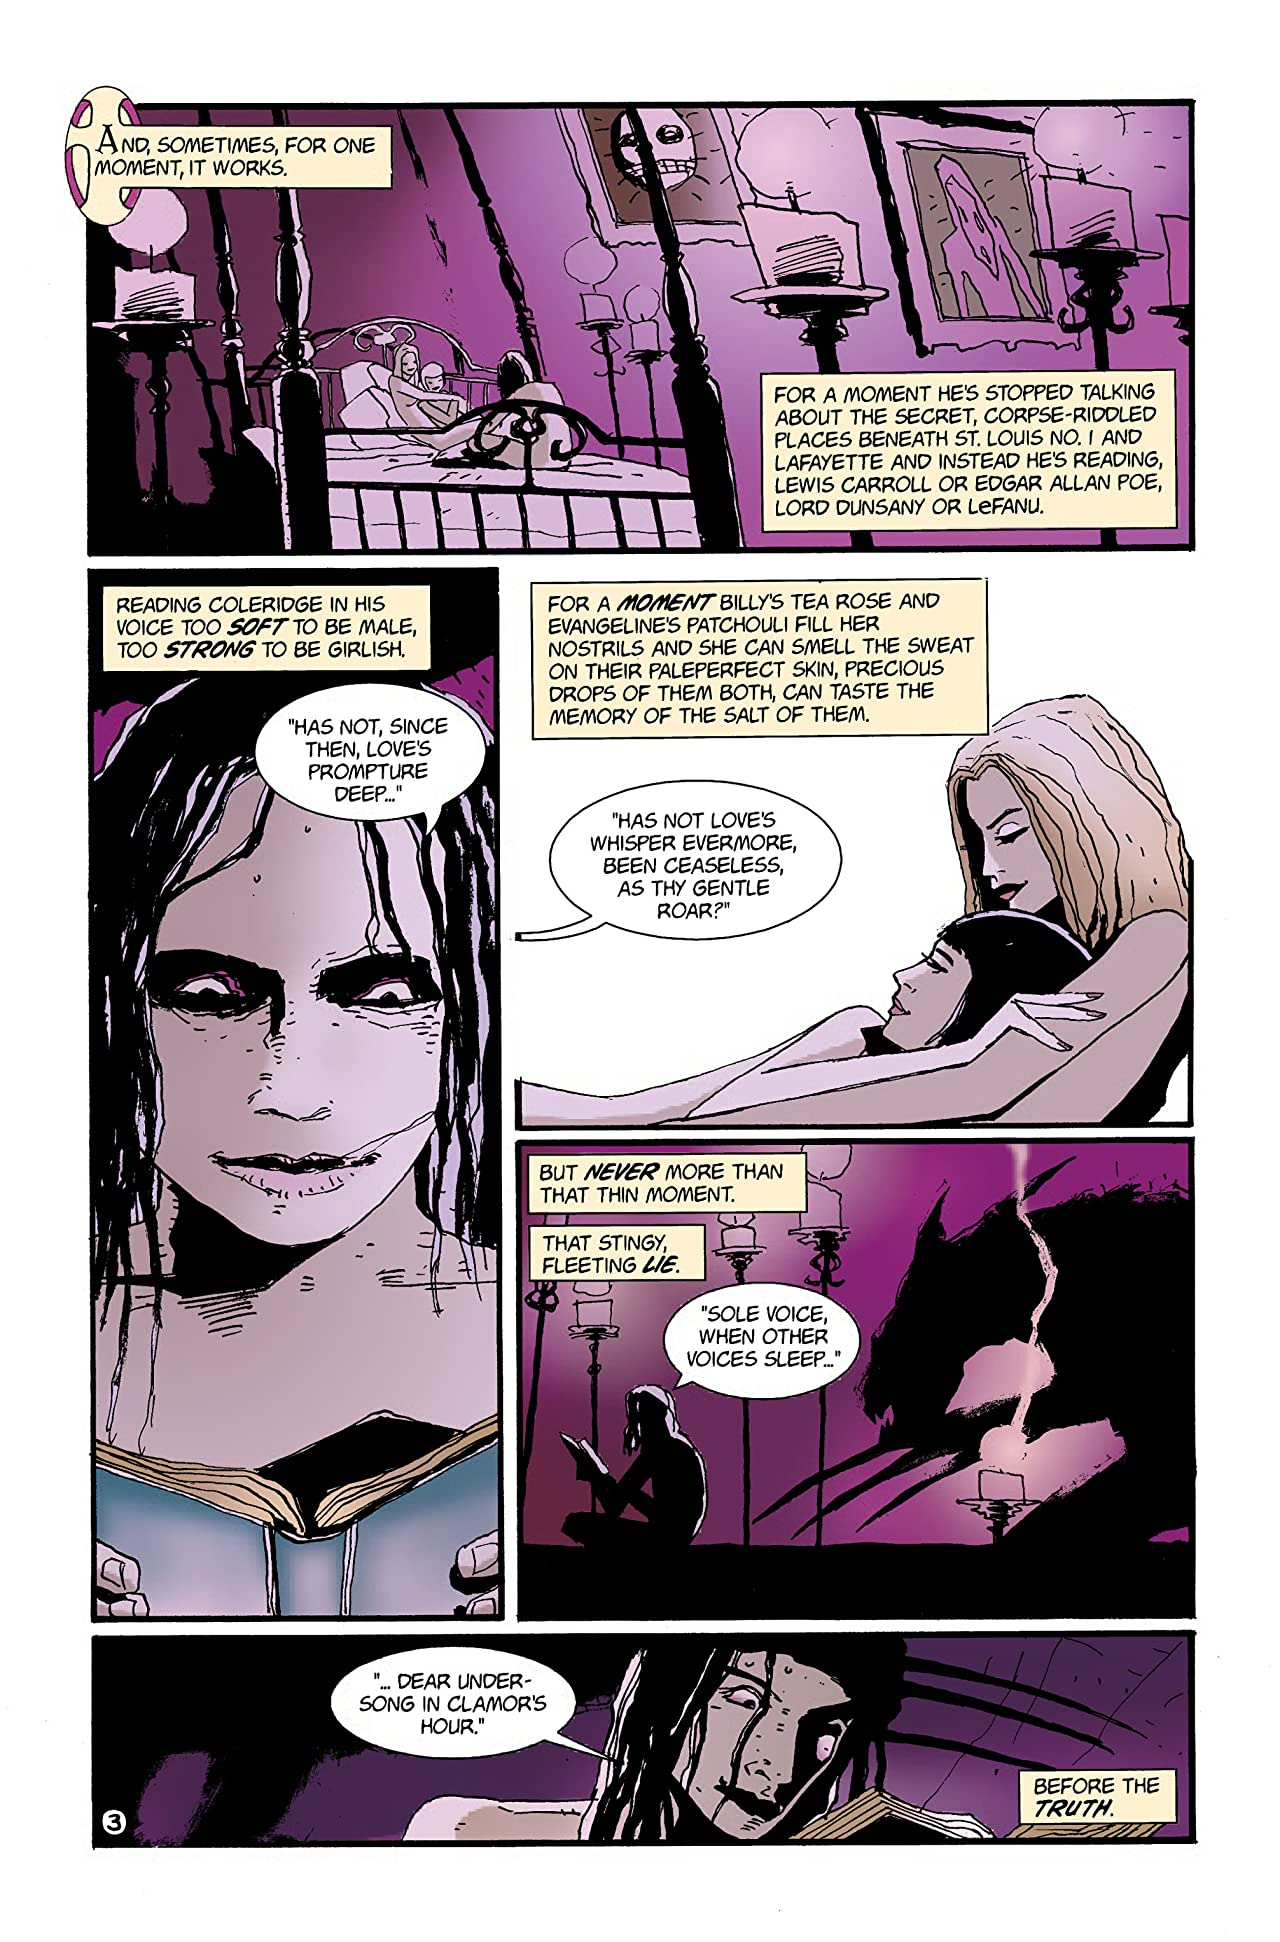 The Girl Who Would Be Death (1999) #1